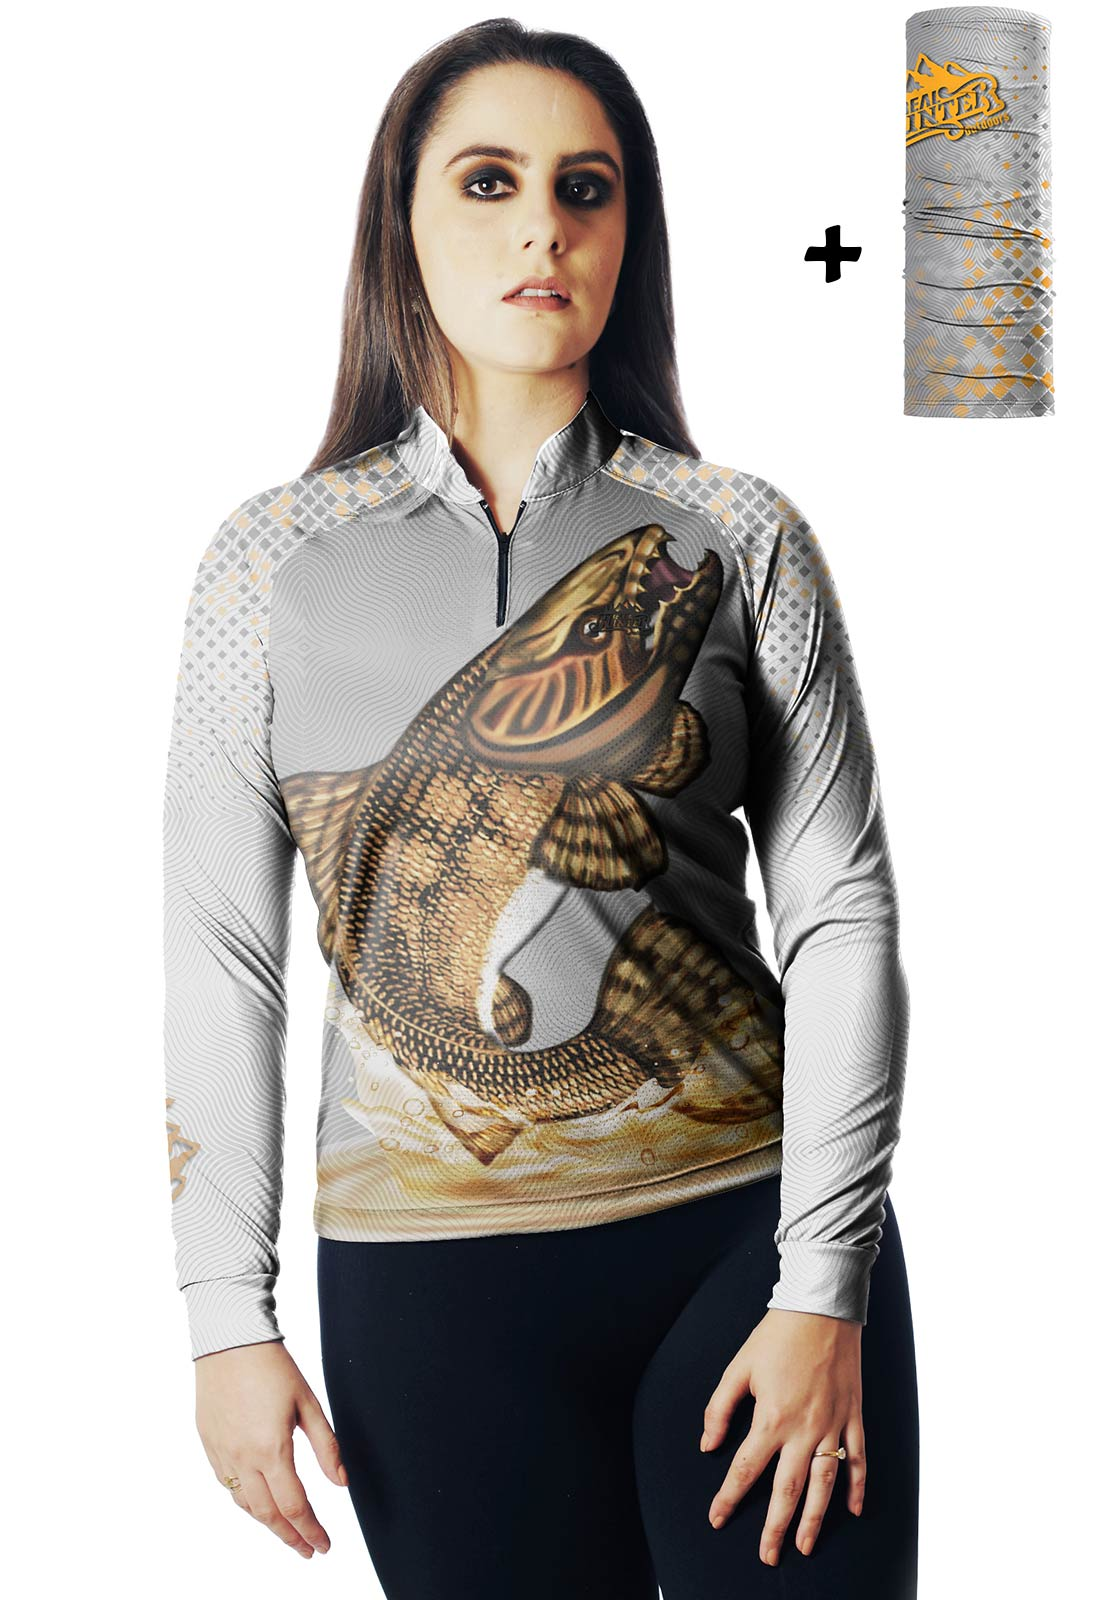 CAMISA DE PESCA FISH TRAÍRA 02 FEMININA + BANDANA GRÁTIS  - REAL HUNTER OUTDOORS